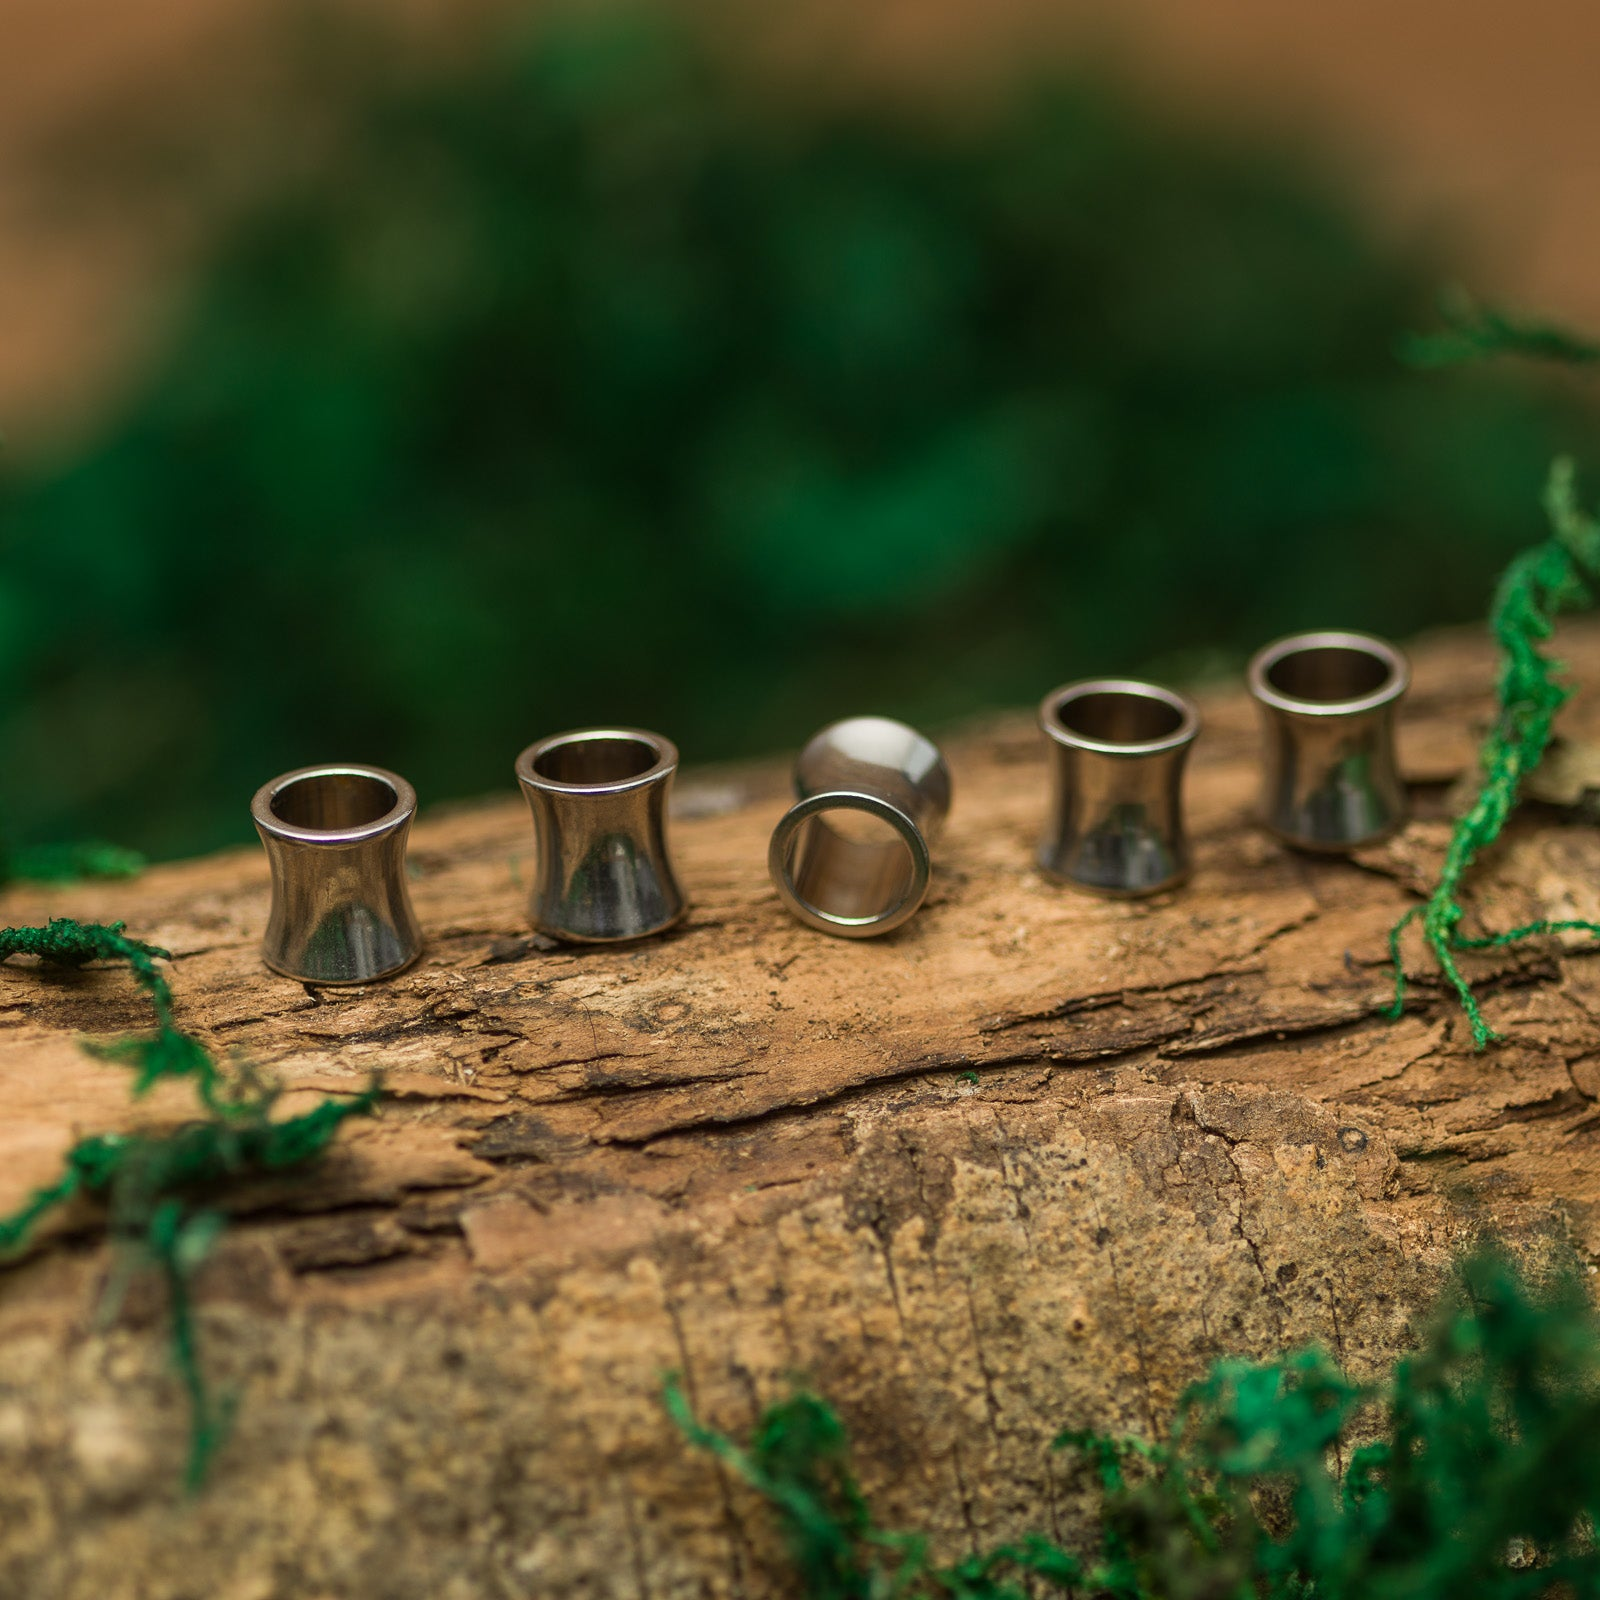 DreadLab - Stainless Steel Curved Cylinder Dread Beads Silver Colour